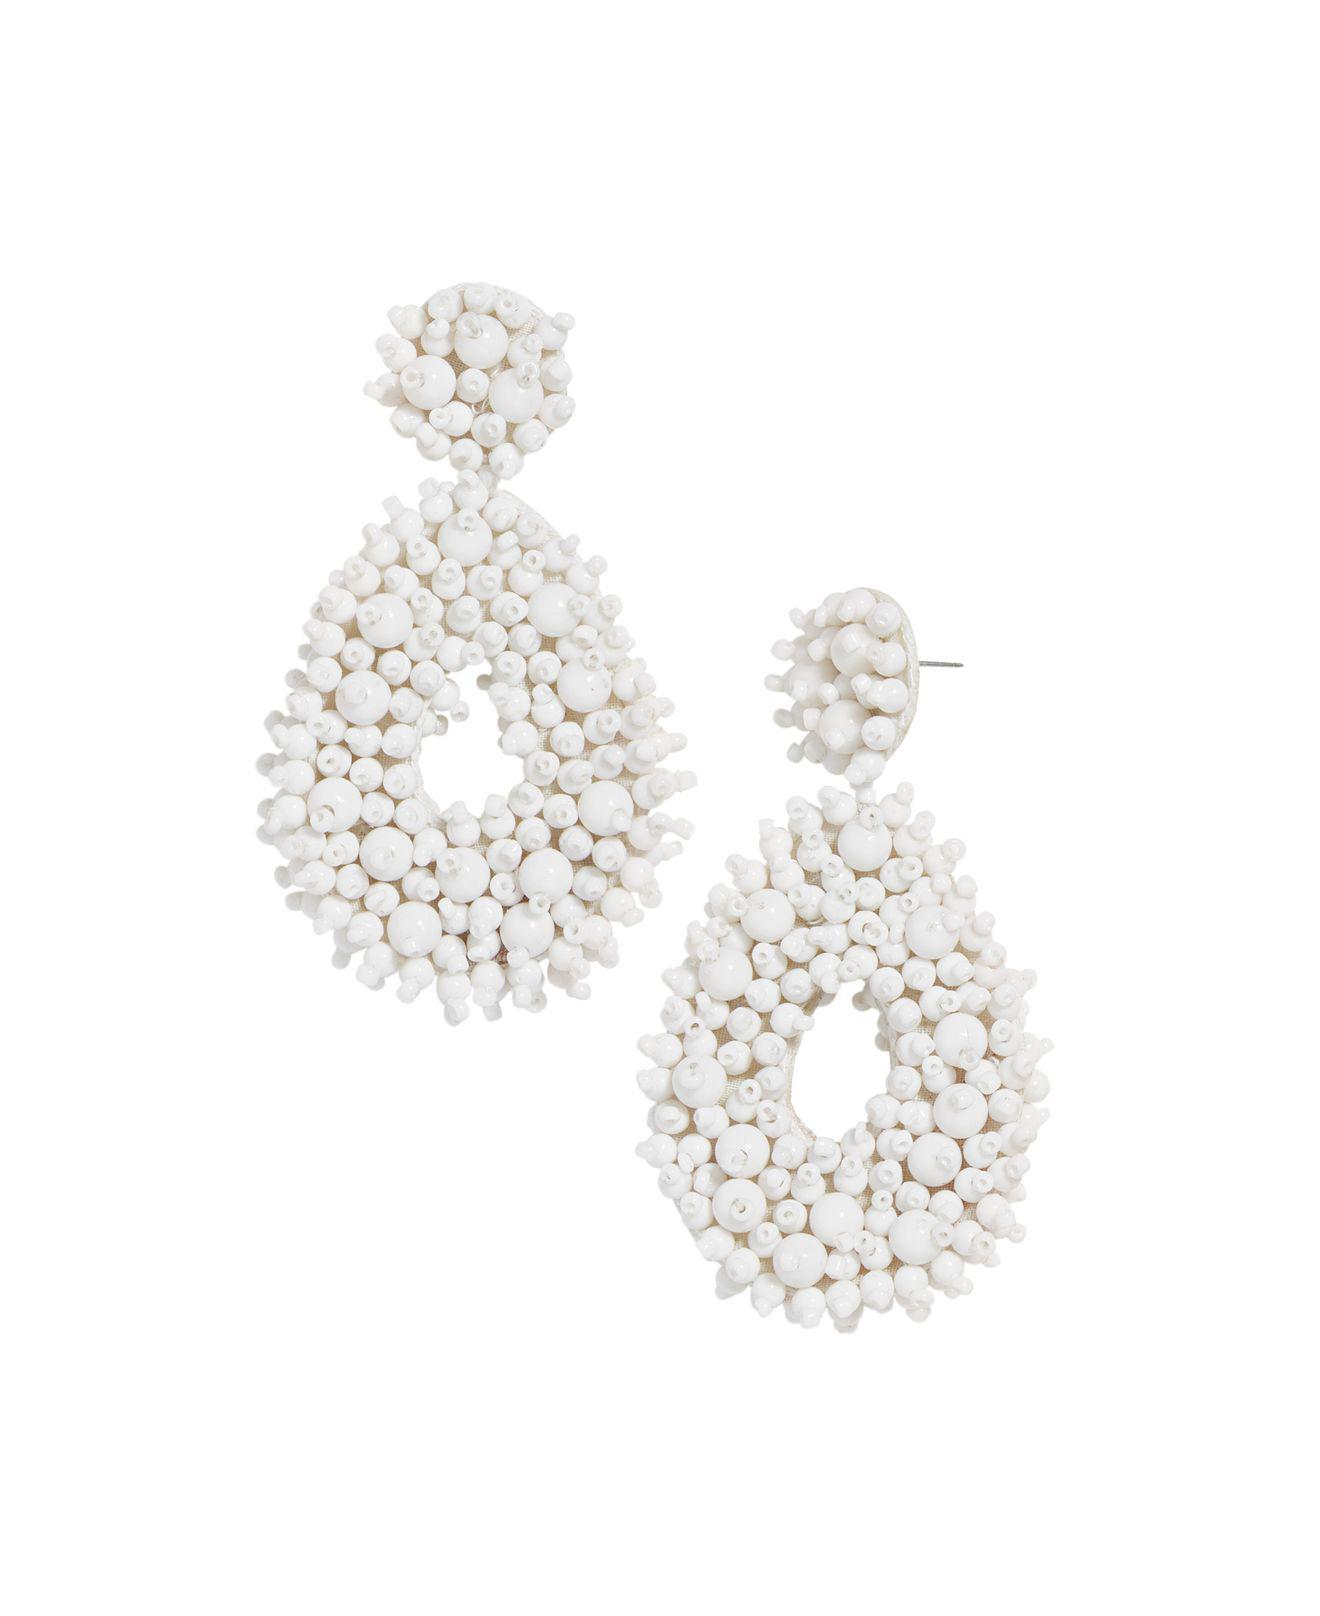 fashionable drop earrings silver at dangle gse with beads beaded shape white coated